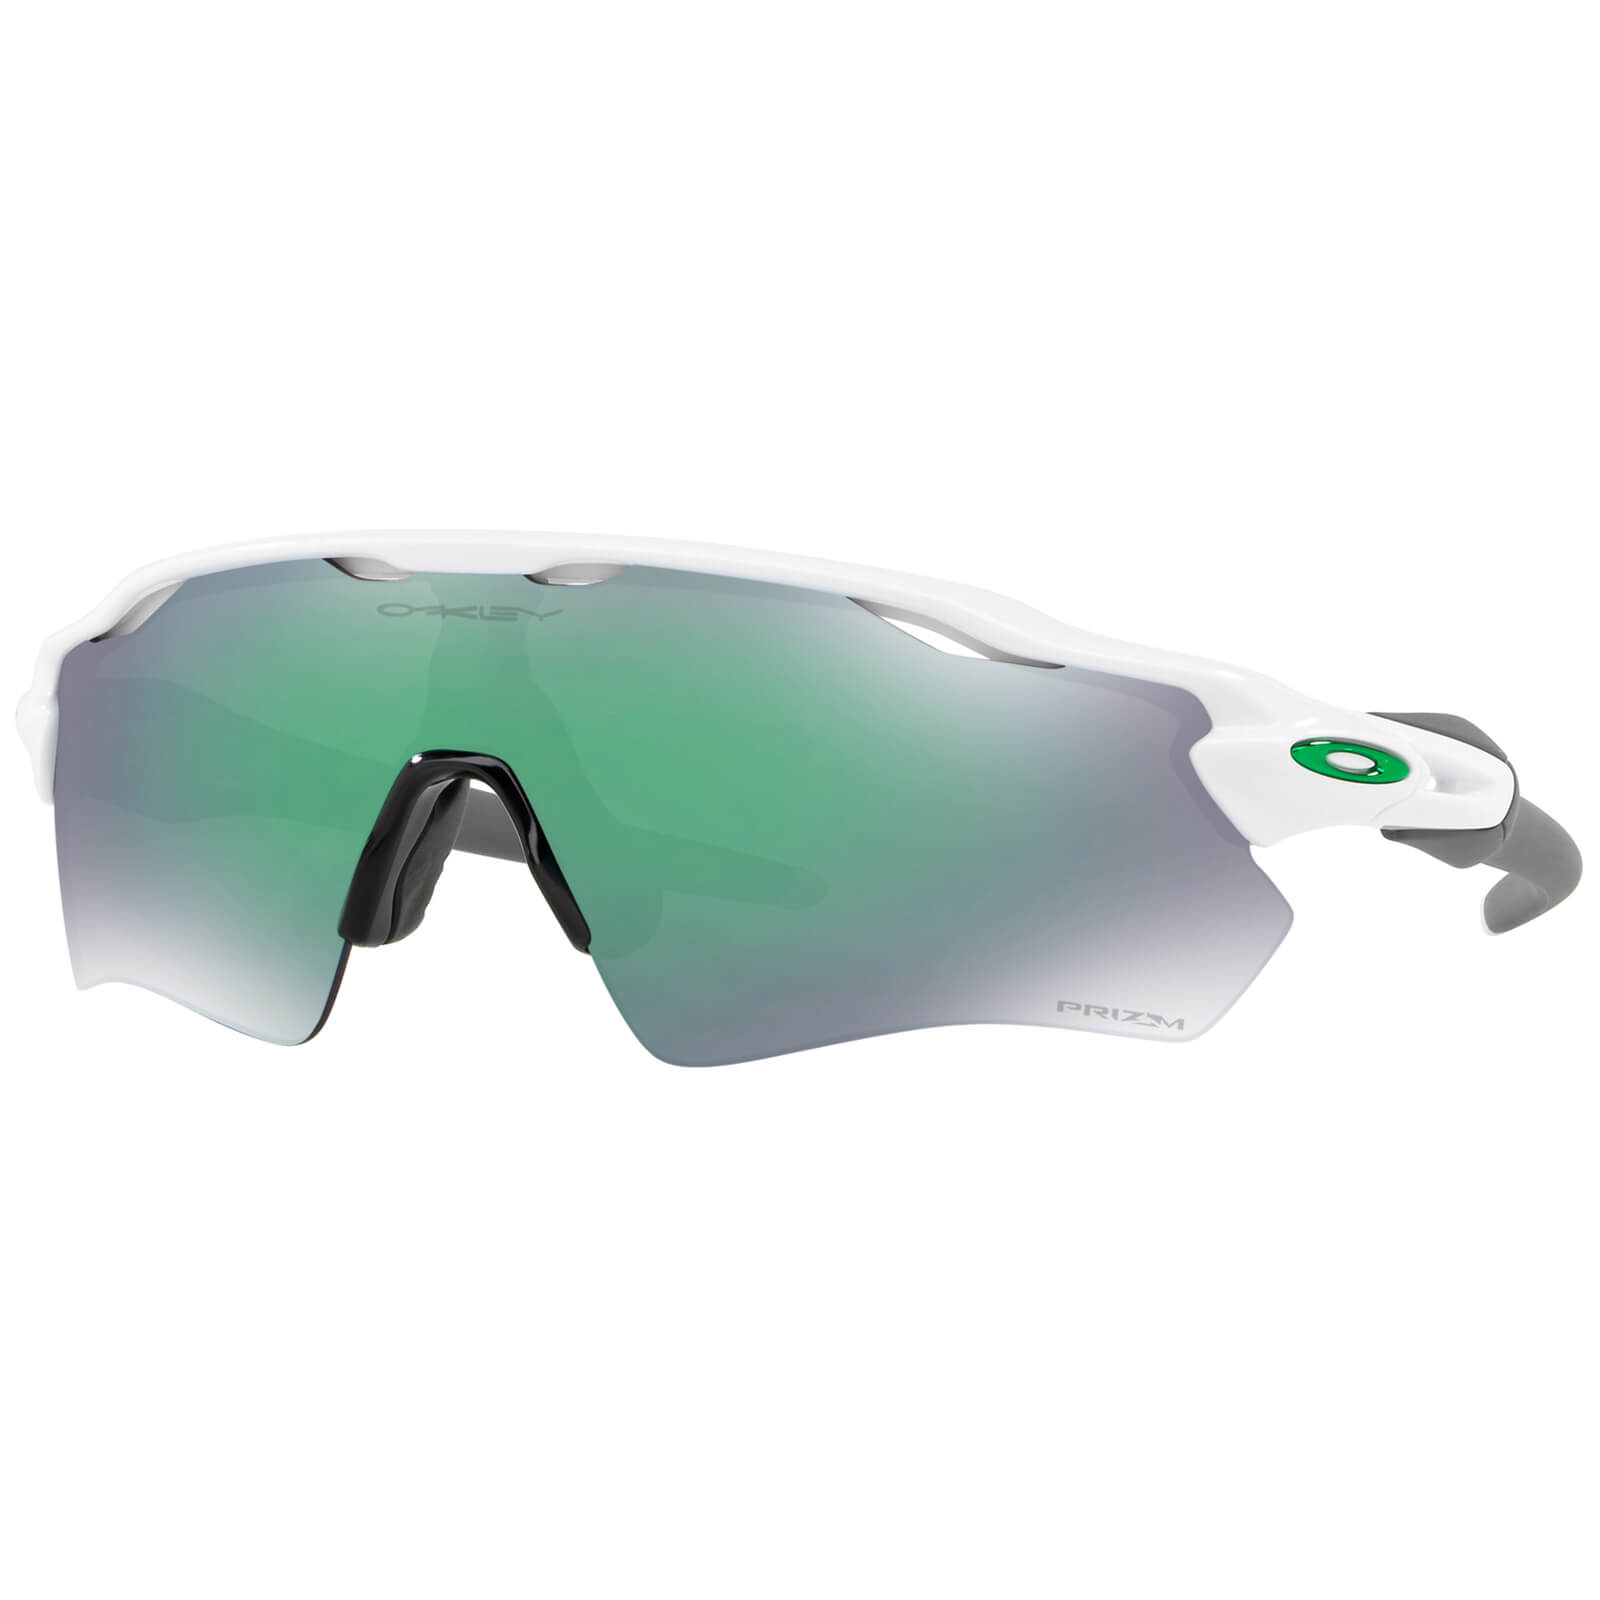 Oakley Radar EV Path Sunglasses - Polished White/Prizm Jade